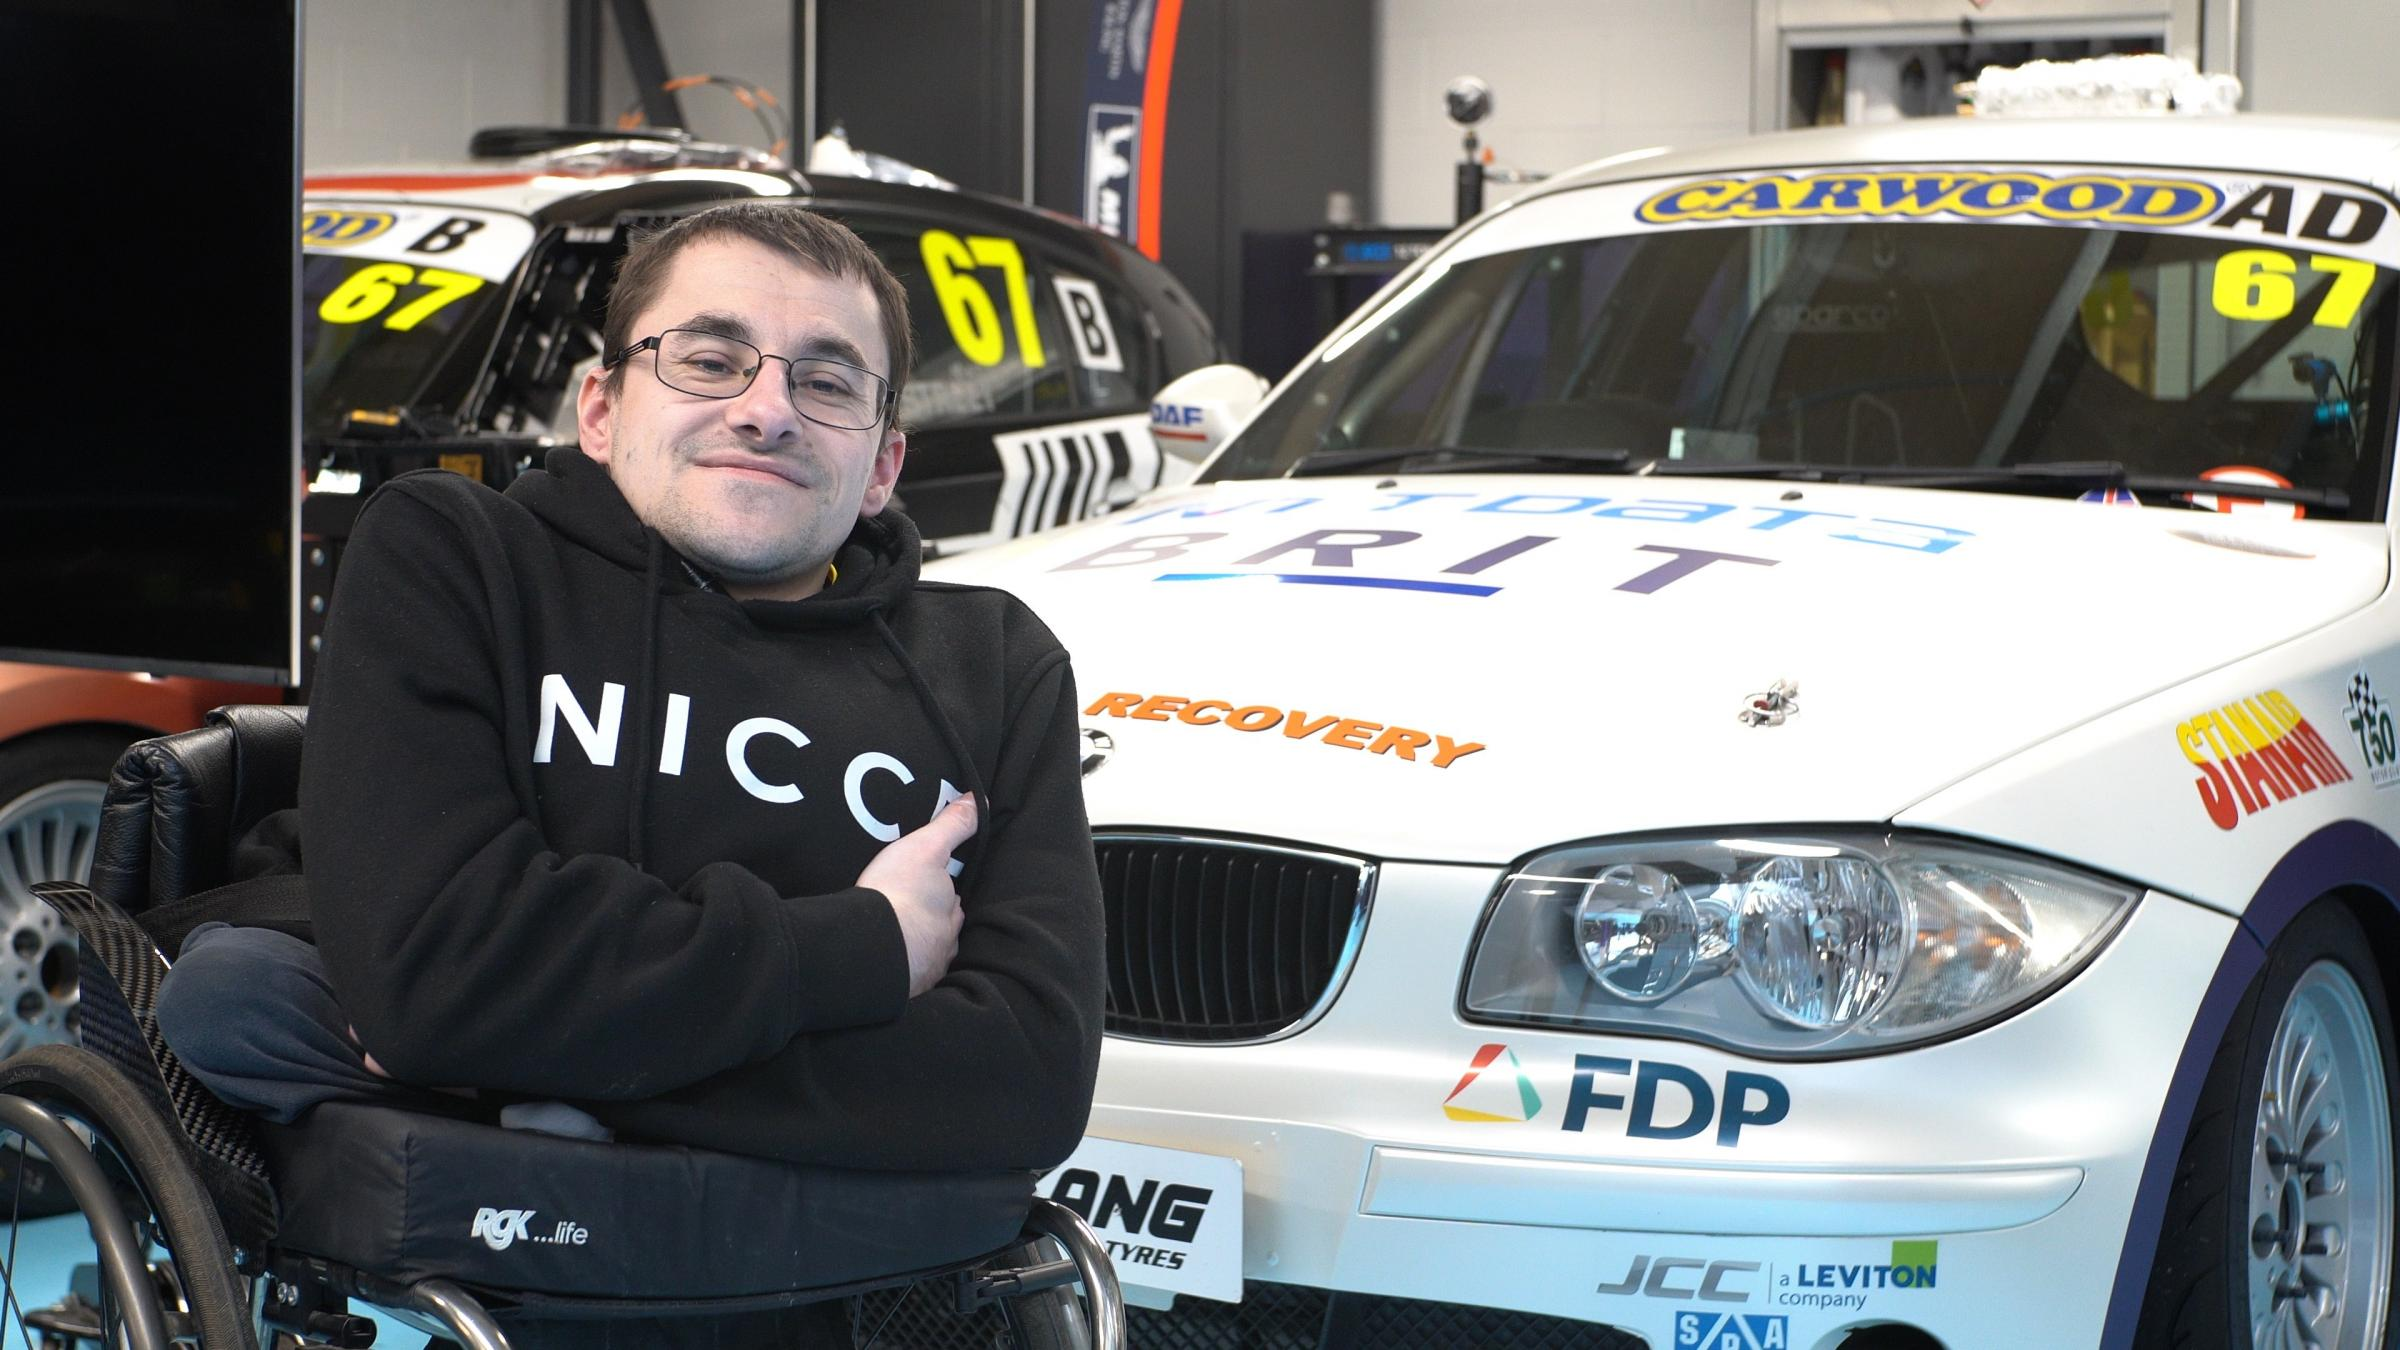 Disabled driver to get behind the wheel at Silverstone